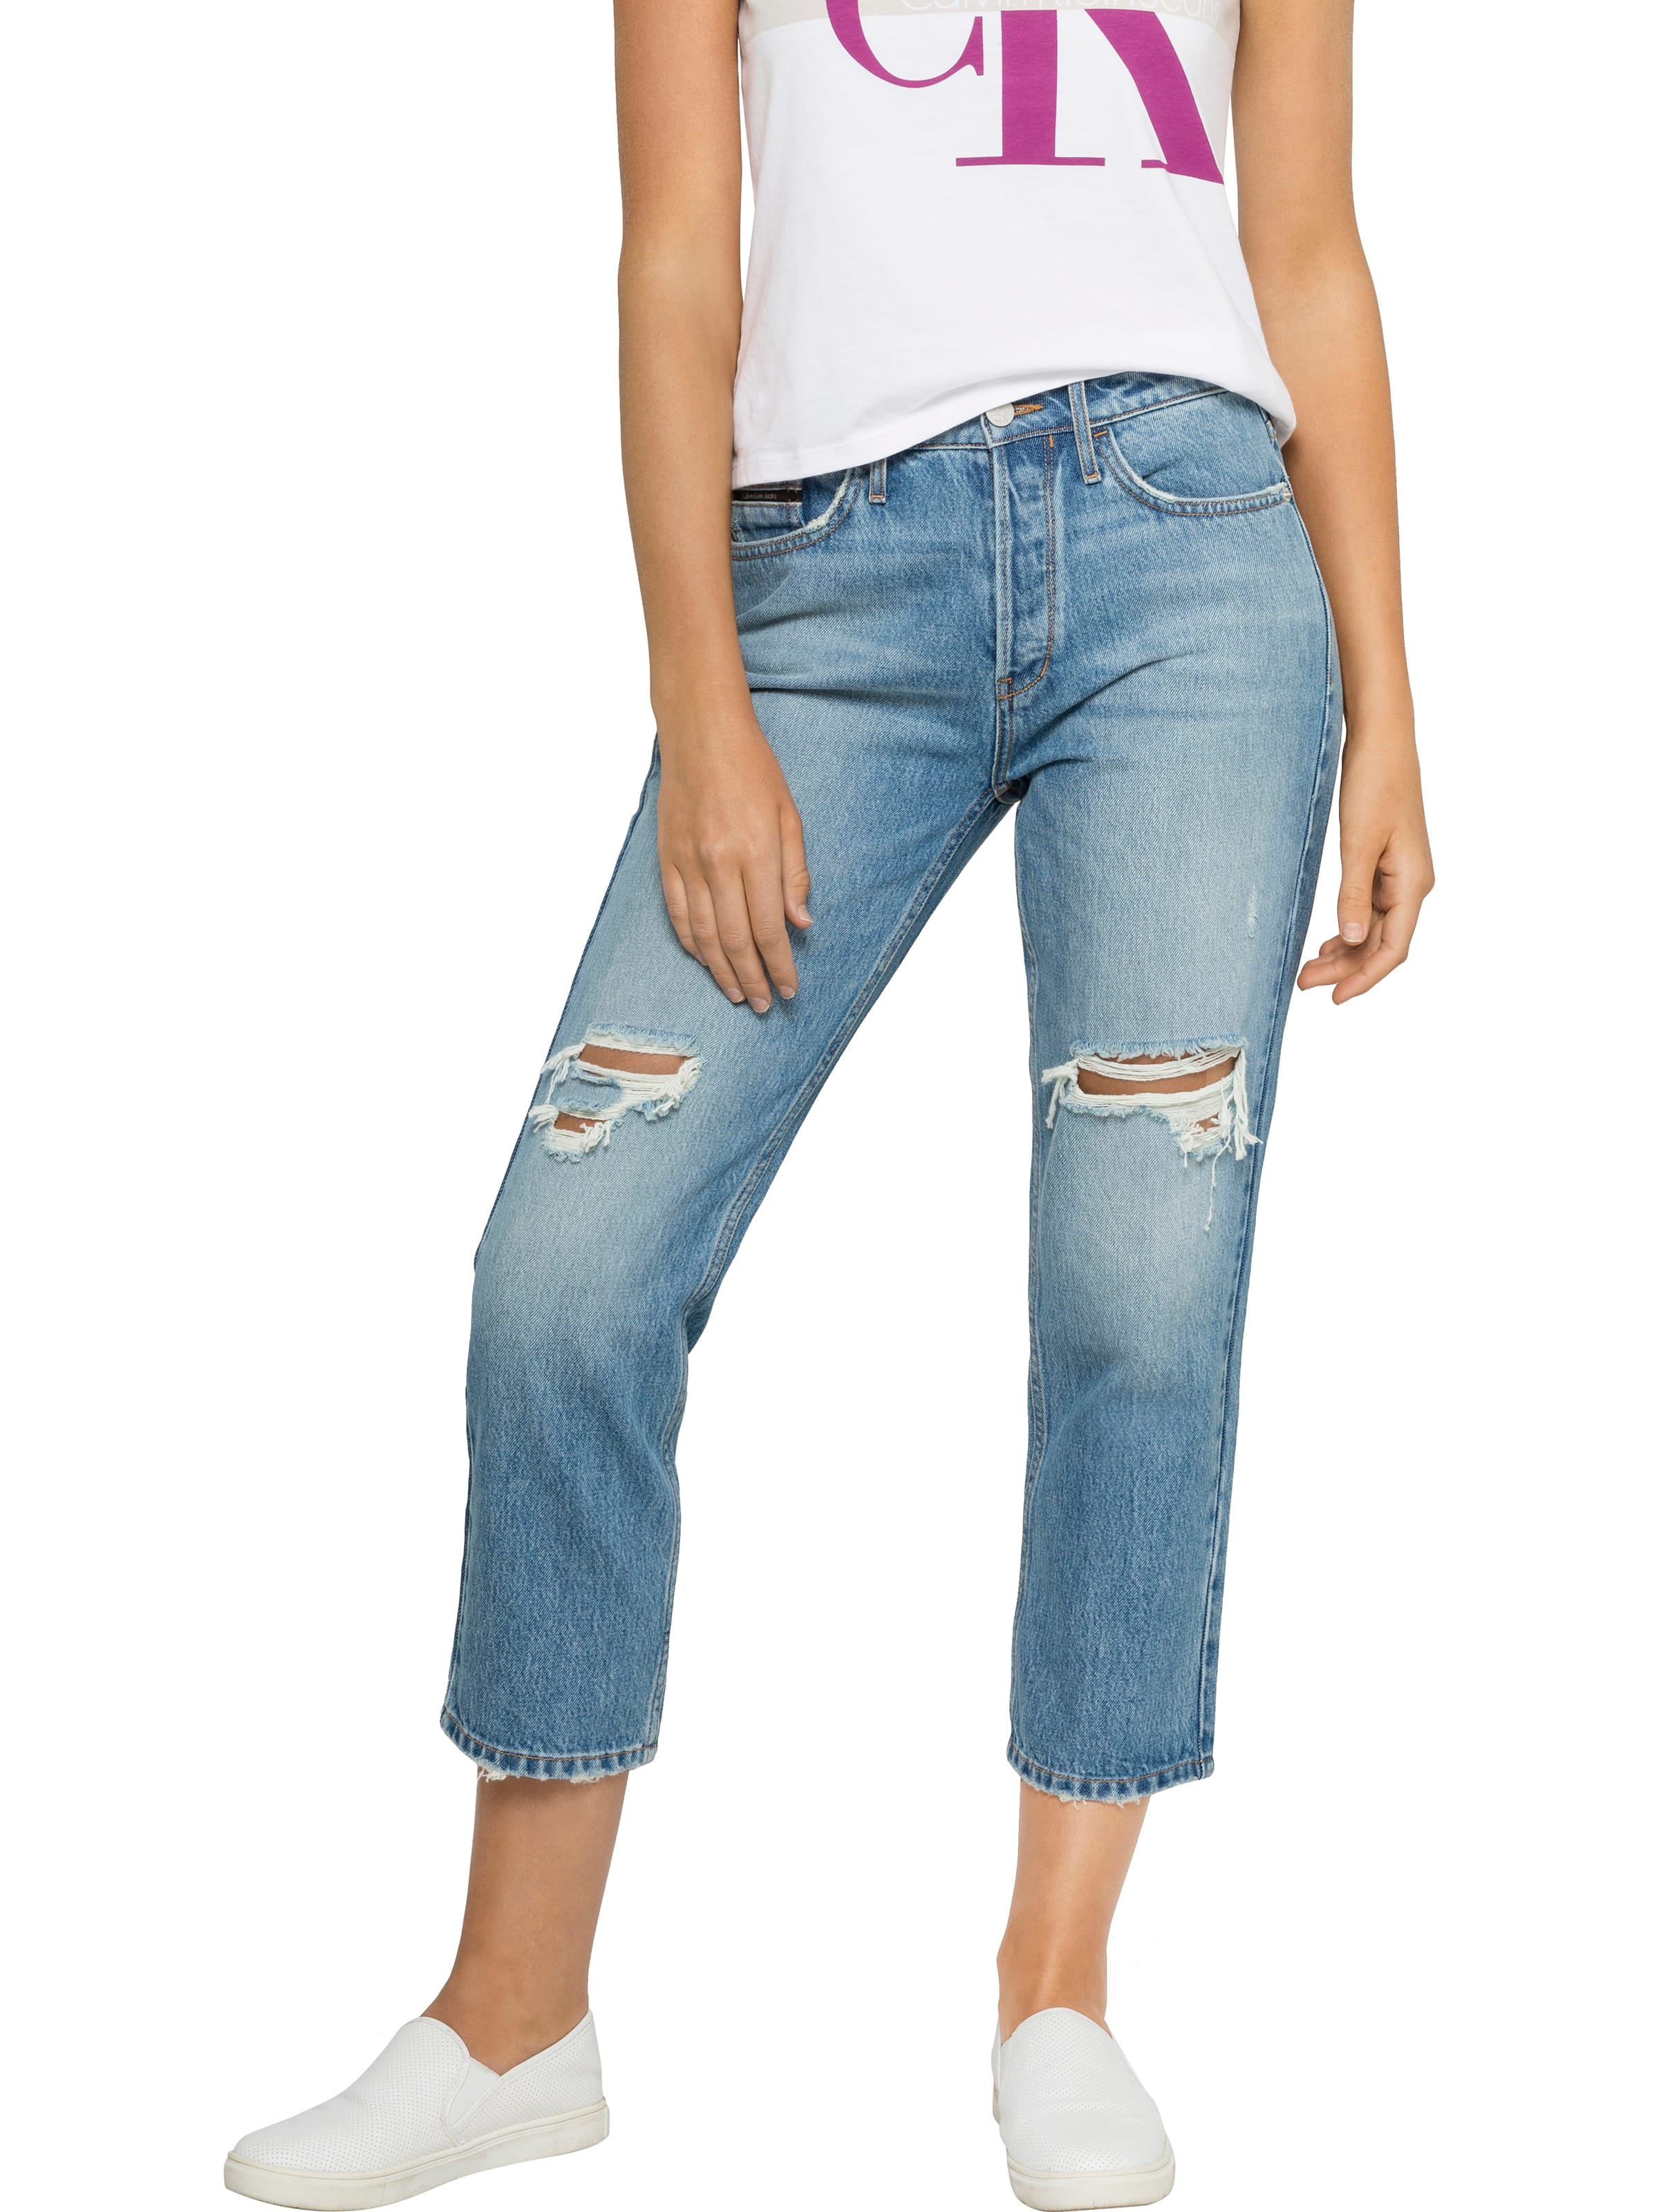 Just Jeans Calvin Klein High Rise Straight Ankle Jean In Zephyr Blue 8721522